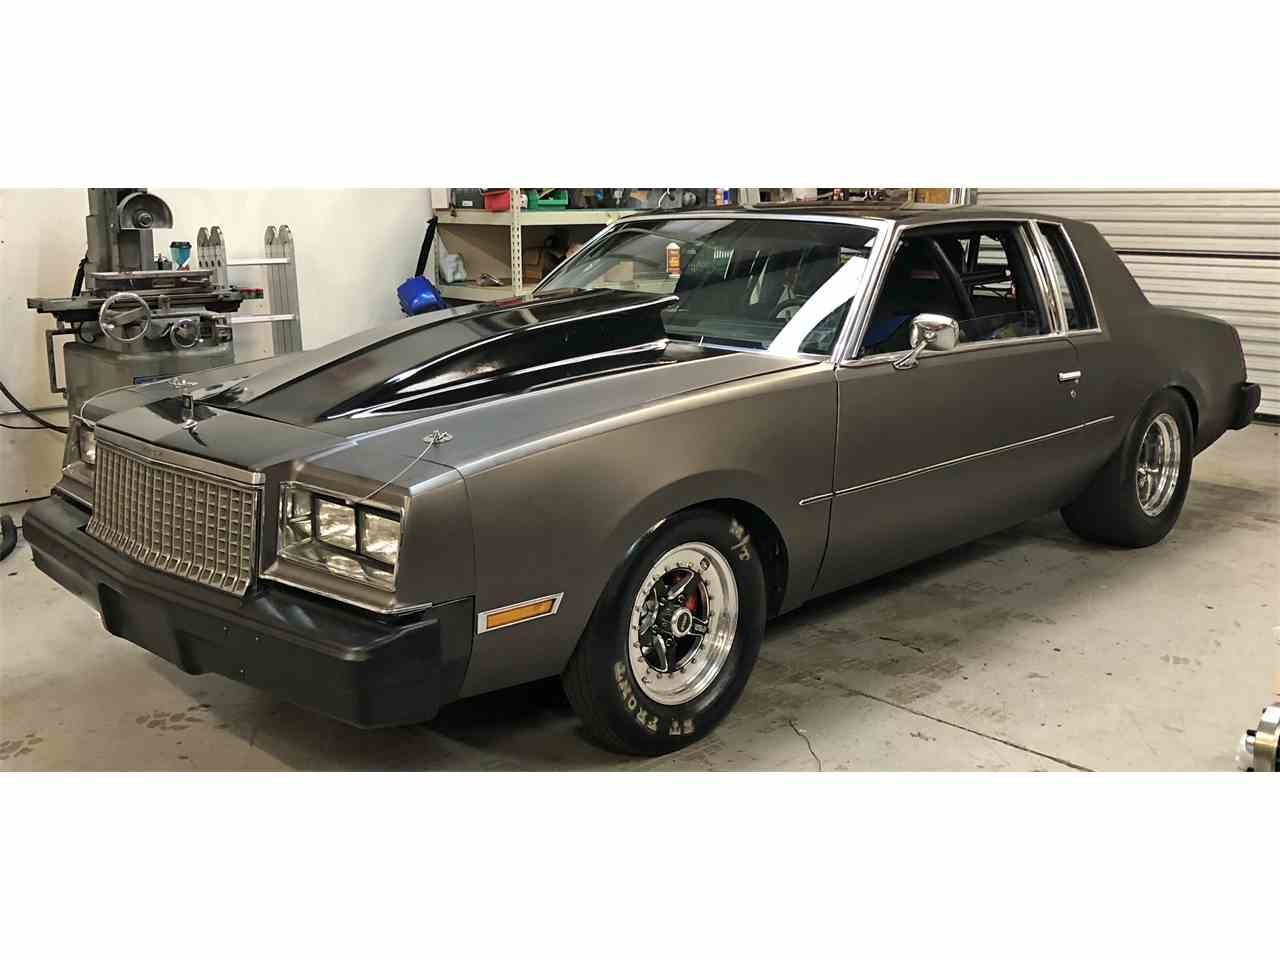 std cc type for view of georgia com t classiccars picture listings large in sale c buick regal alpharetta